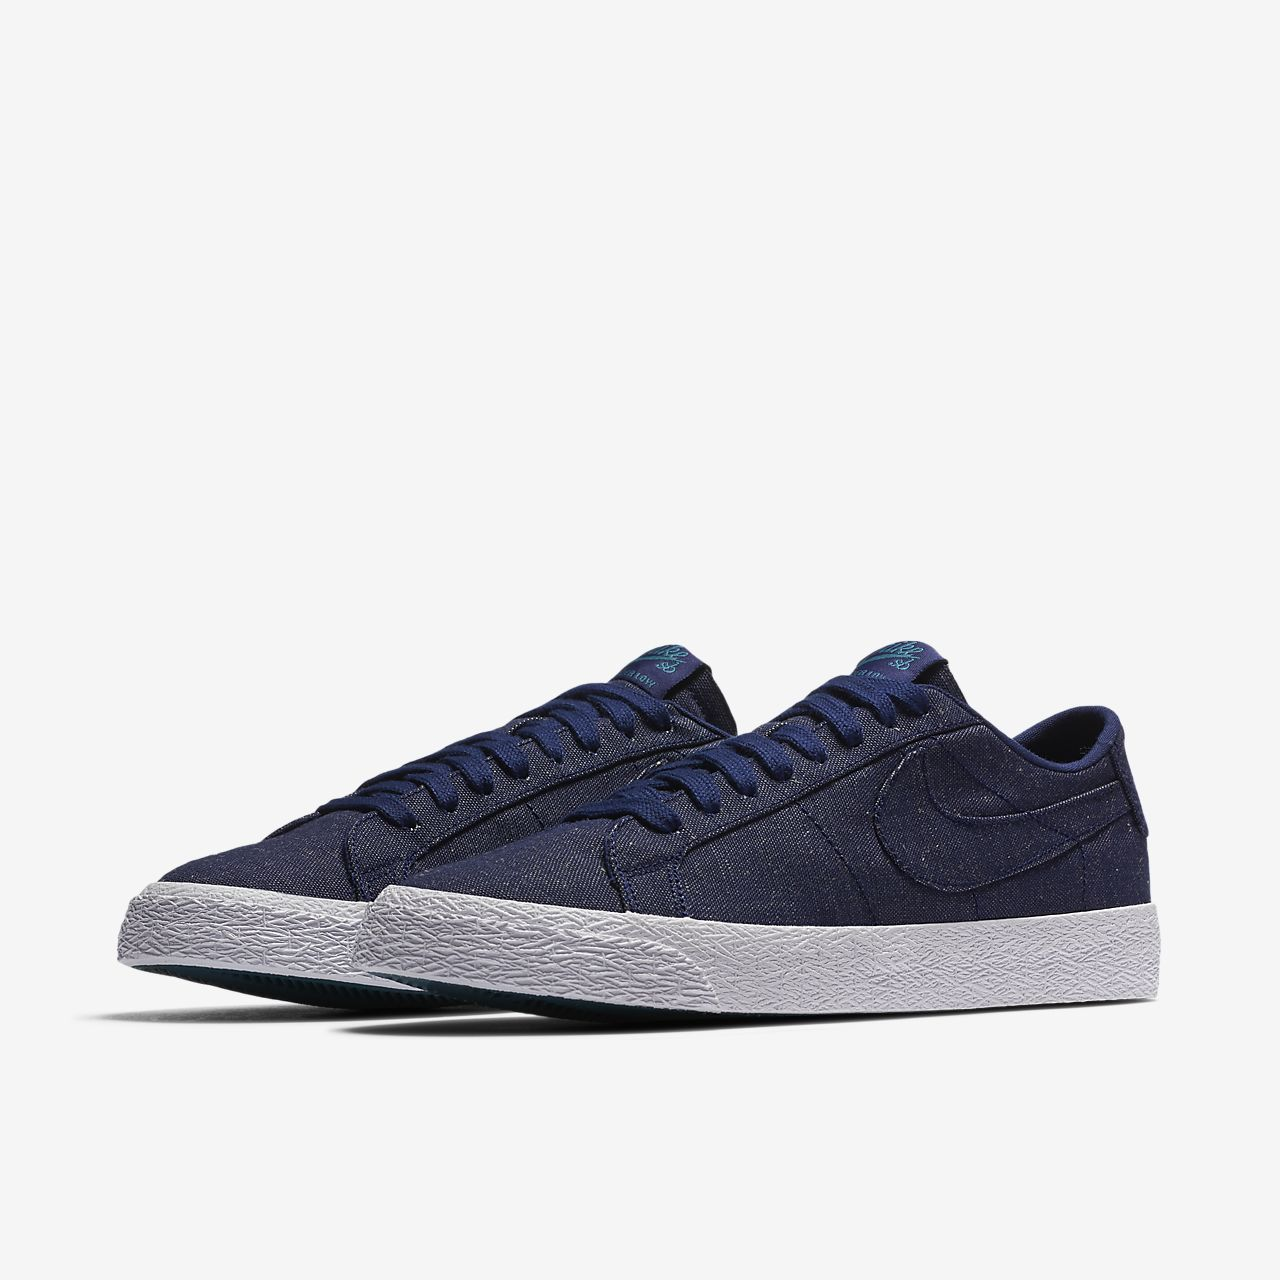 98c409427e35f ... Nike SB Zoom Blazer Low Canvas Deconstructed Men's Skateboarding Shoe